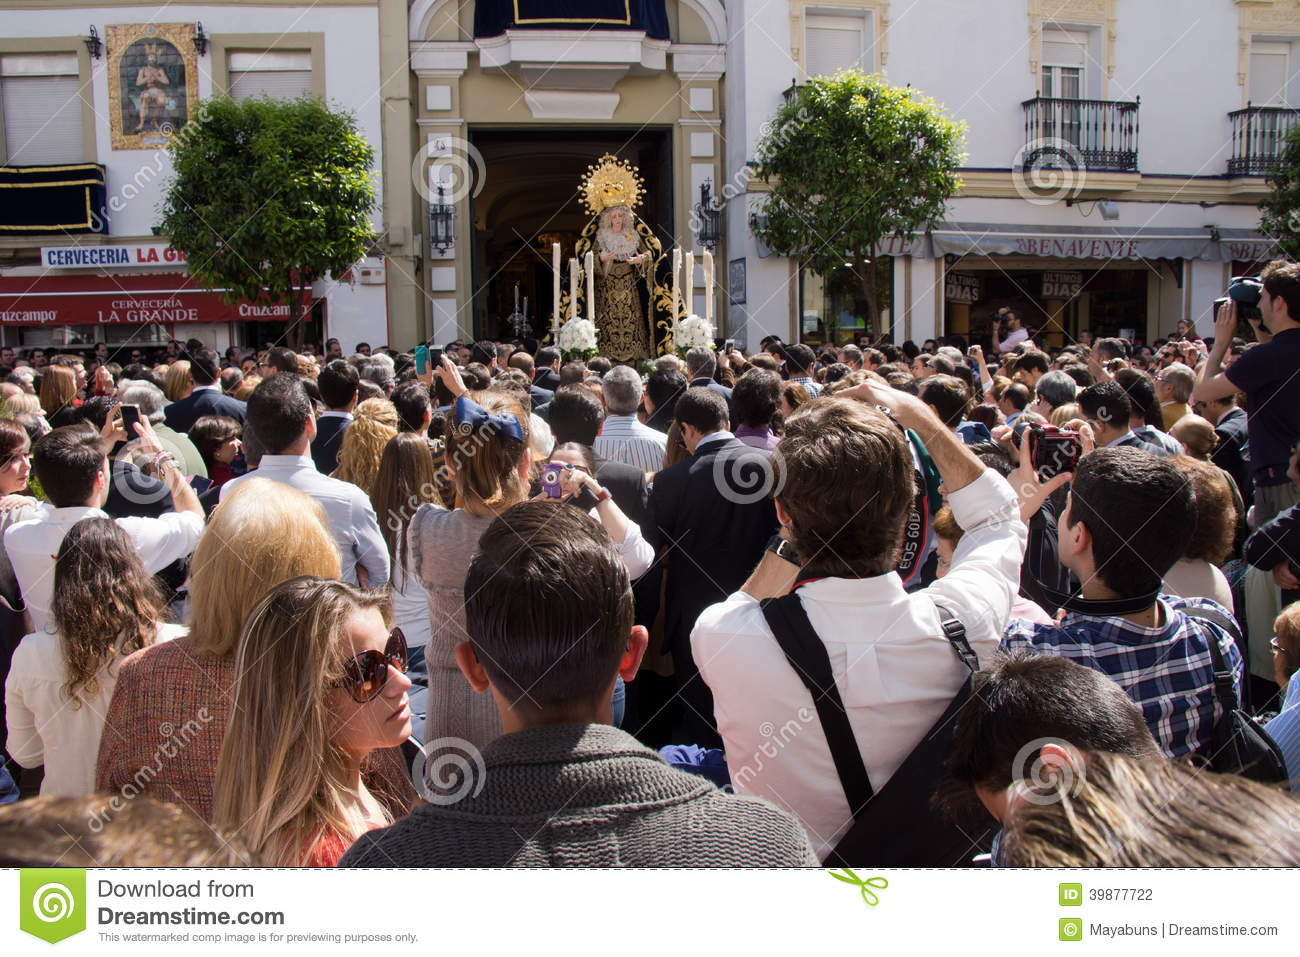 Procession in Seville